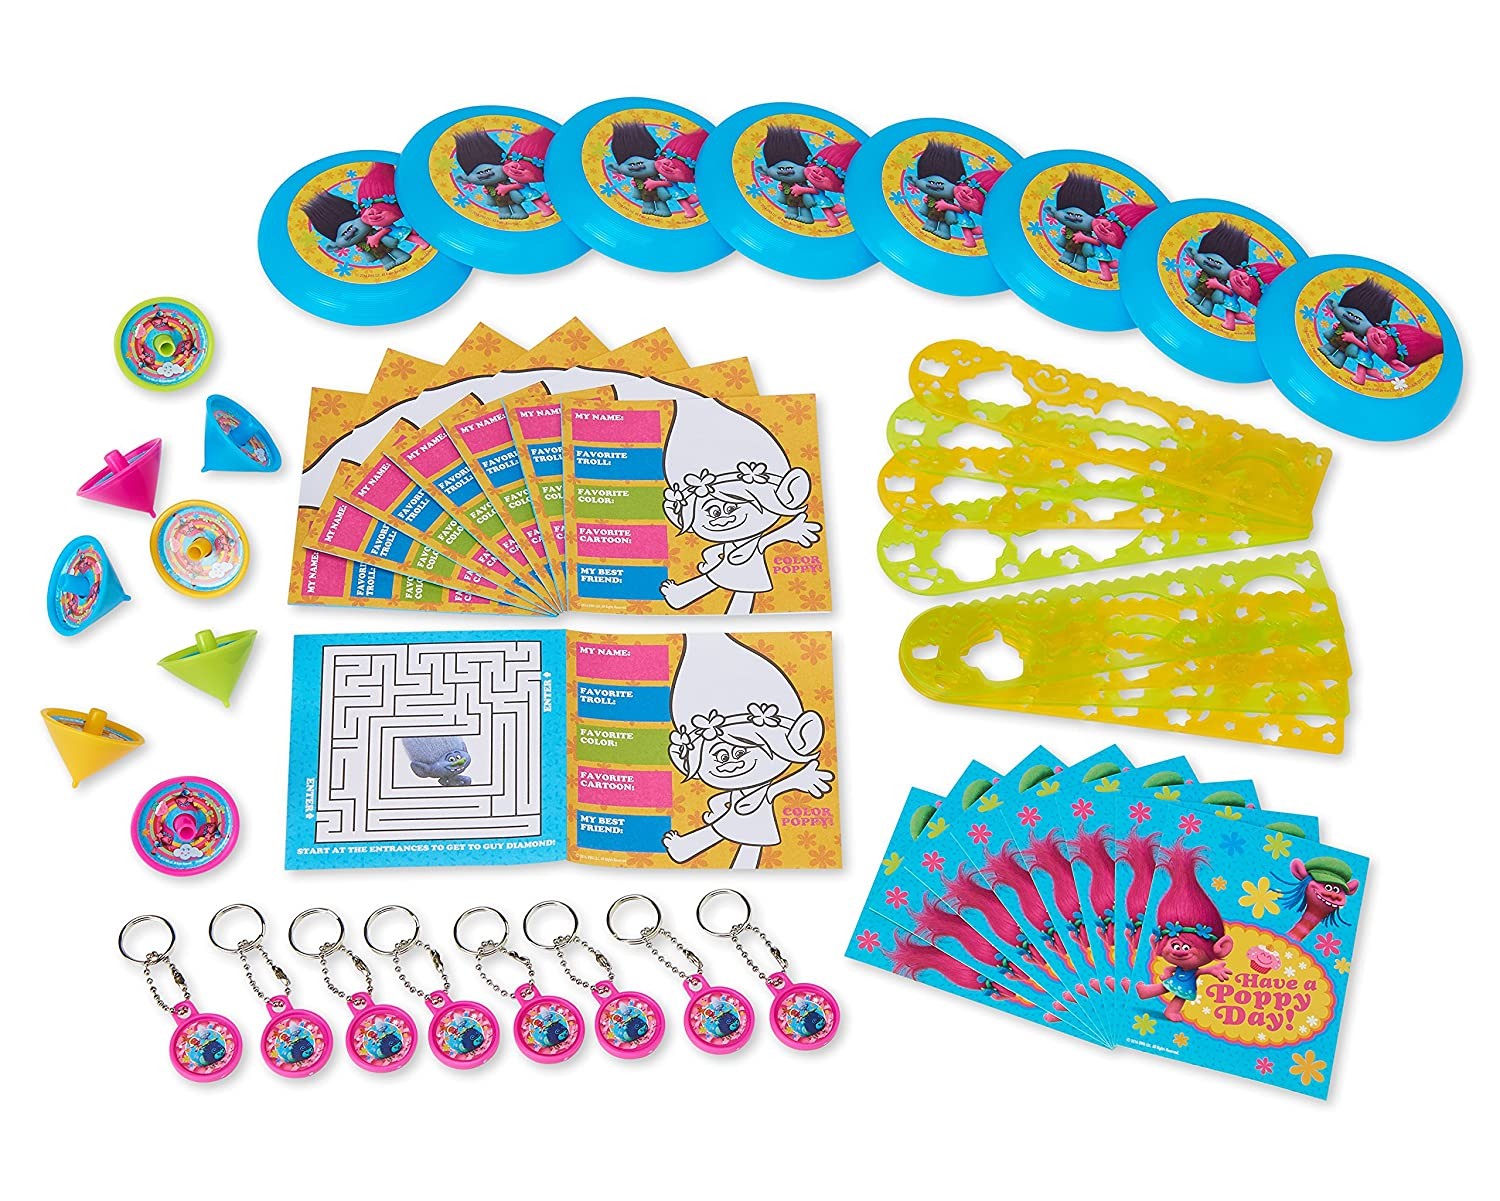 Amazon american greetings trolls party favor value pack toys amazon american greetings trolls party favor value pack toys games kristyandbryce Choice Image